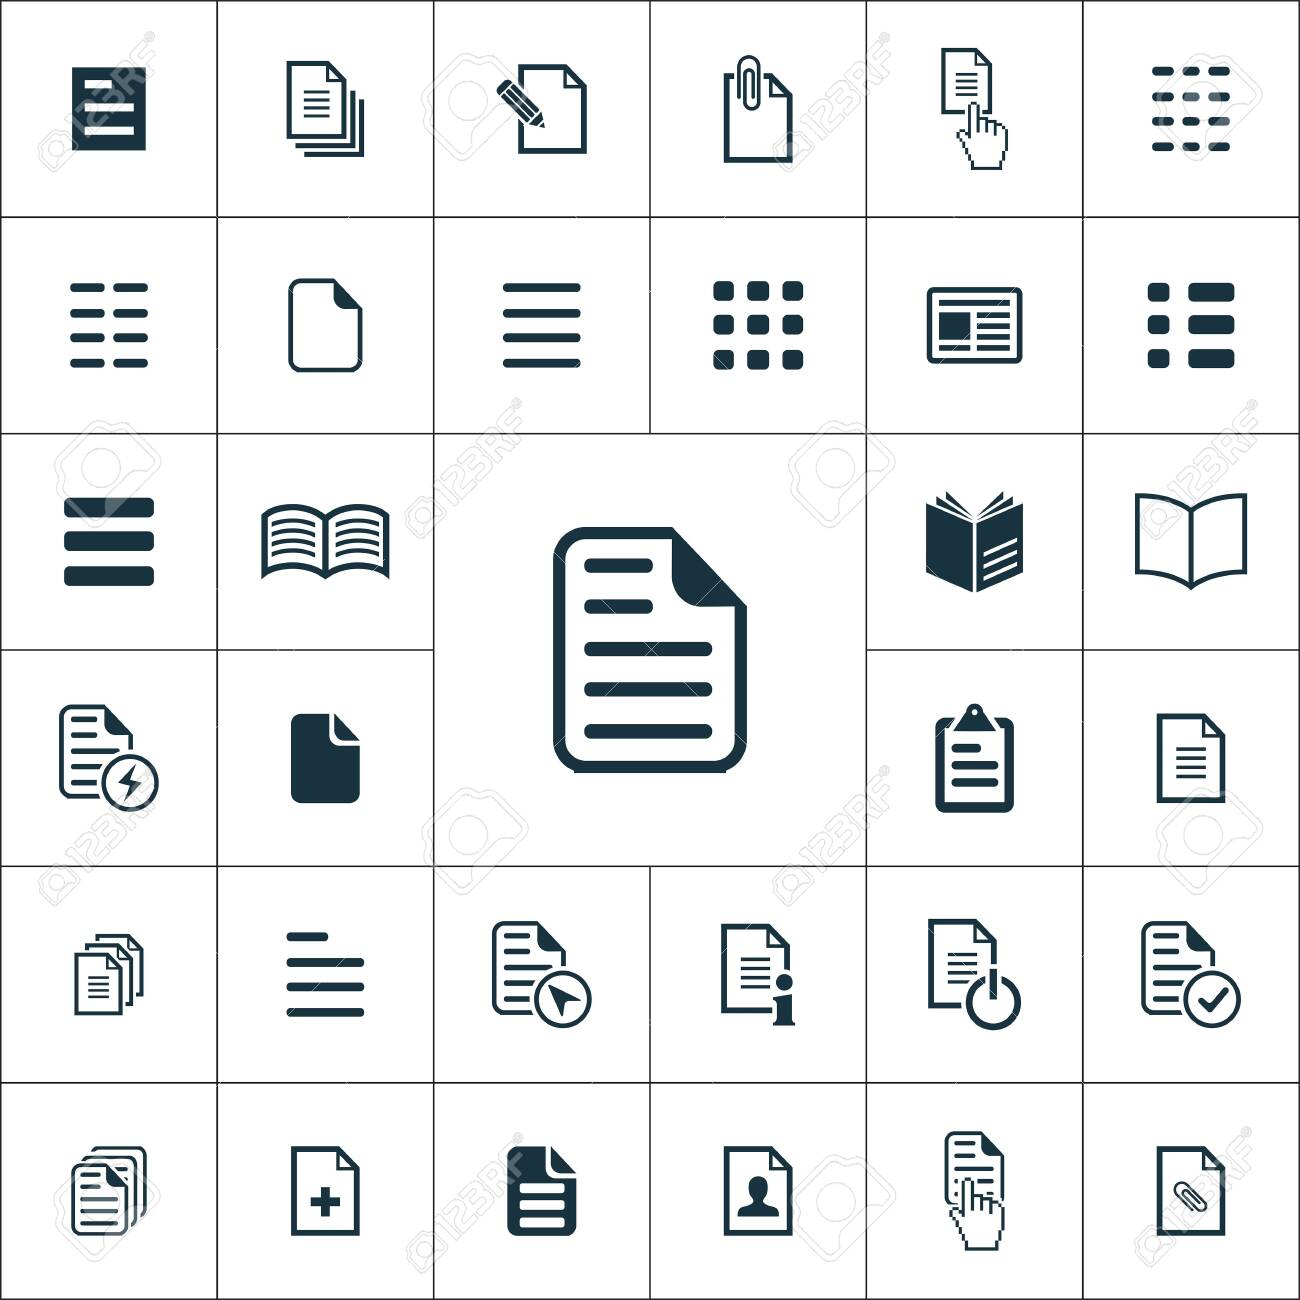 document icons universal set for web and UI - 133748997